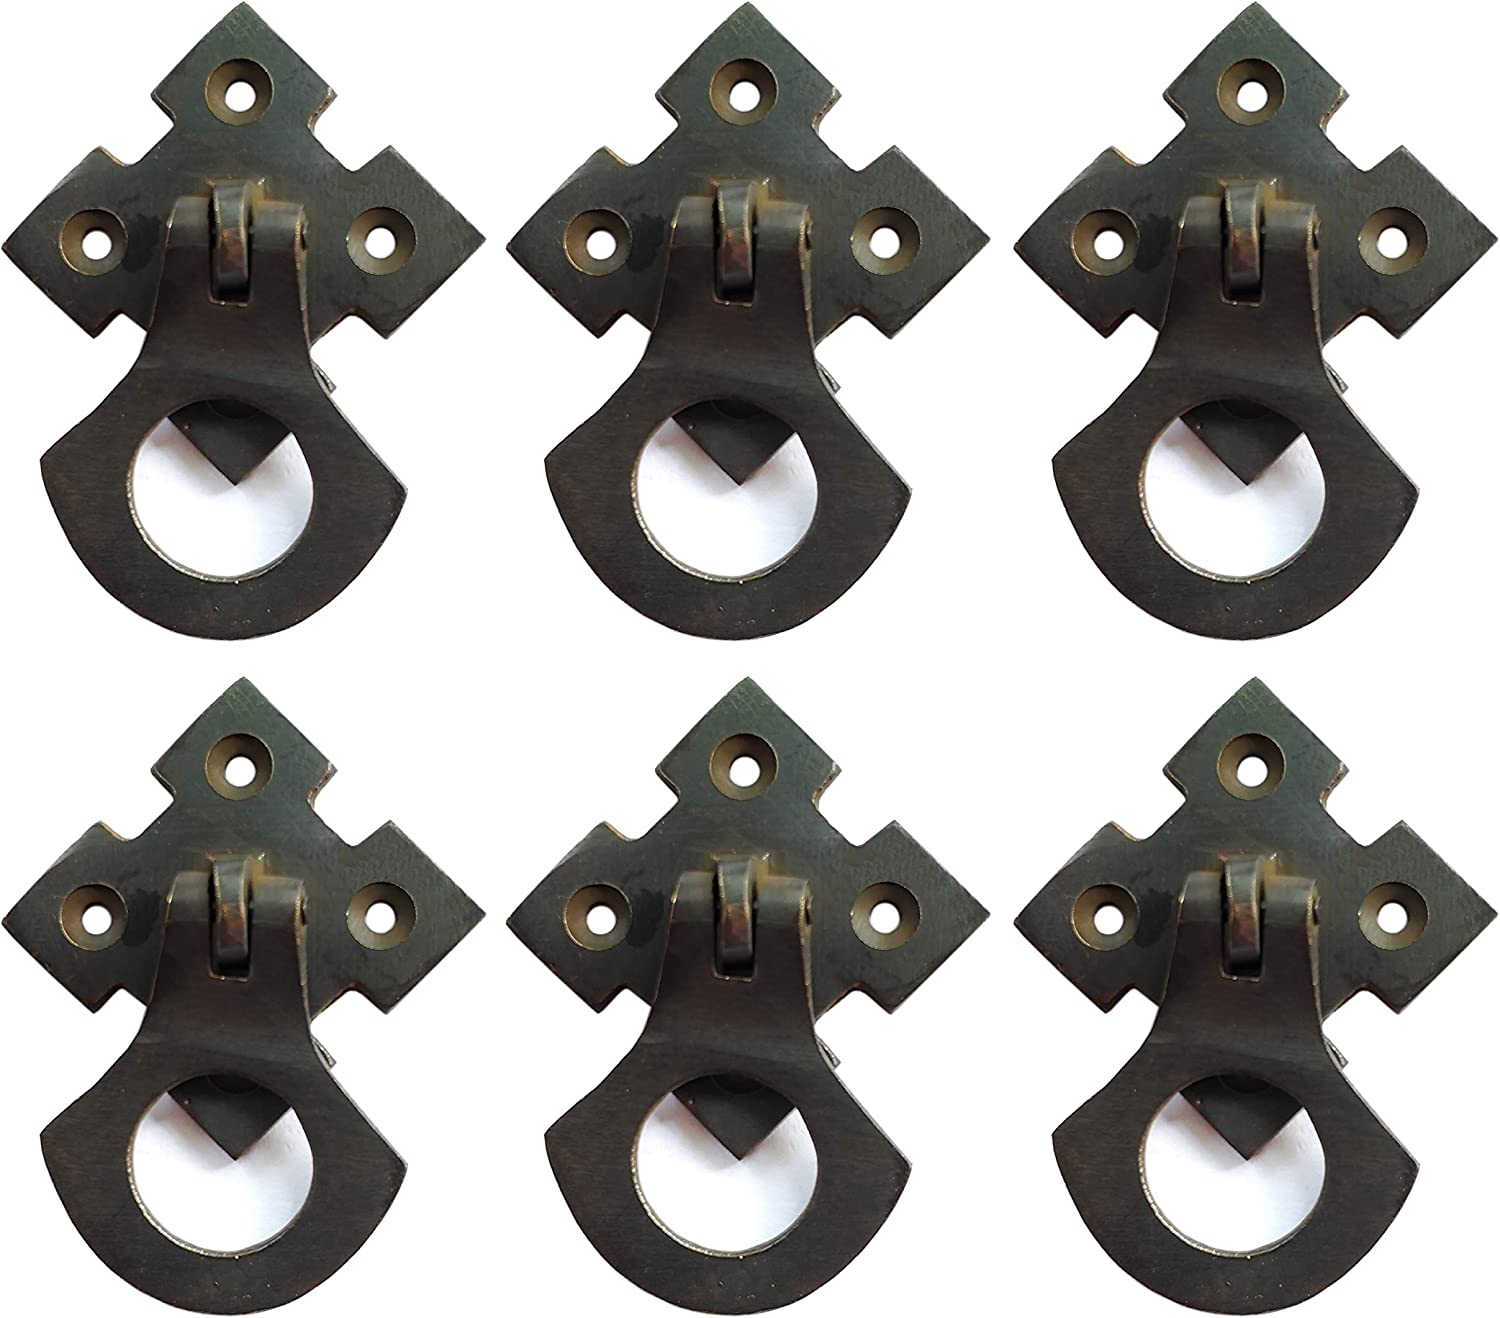 6 Pack Nesha Design Components Arts and Crafts Mission Style Ring Pulls Hardware Oil Rubbed Bronze